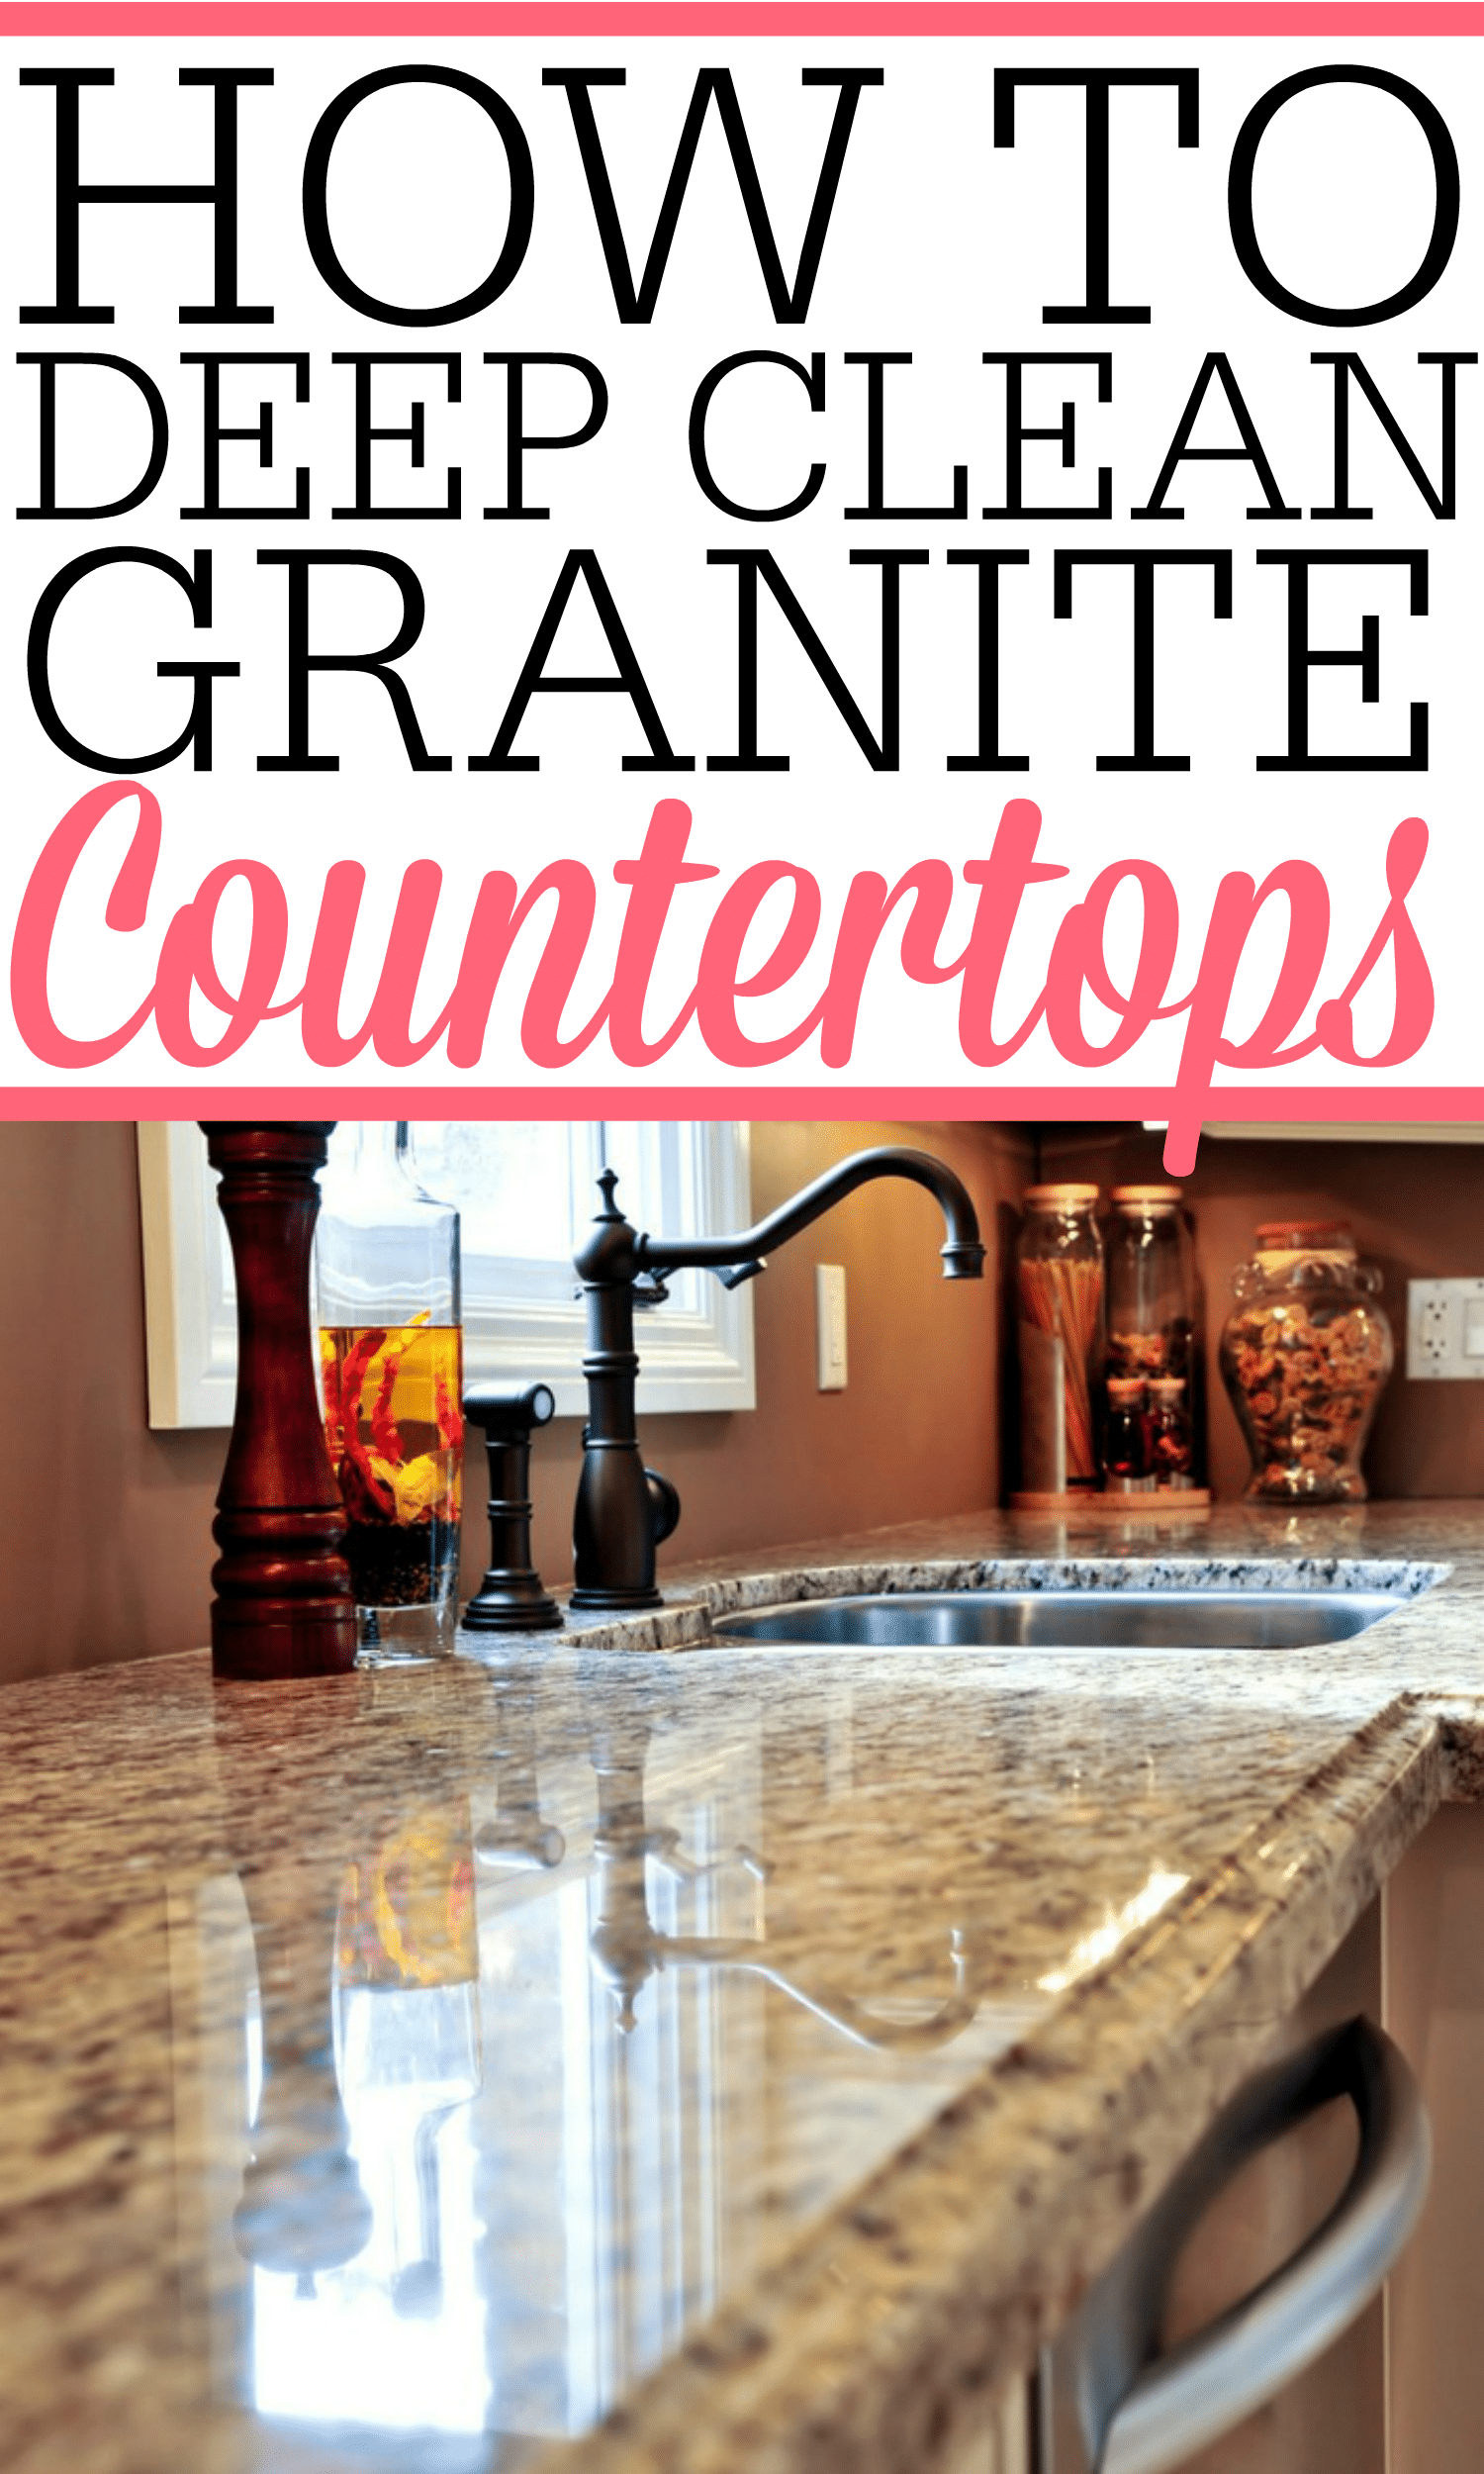 How To Deep Clean Granite Countertops - Frugally Blonde